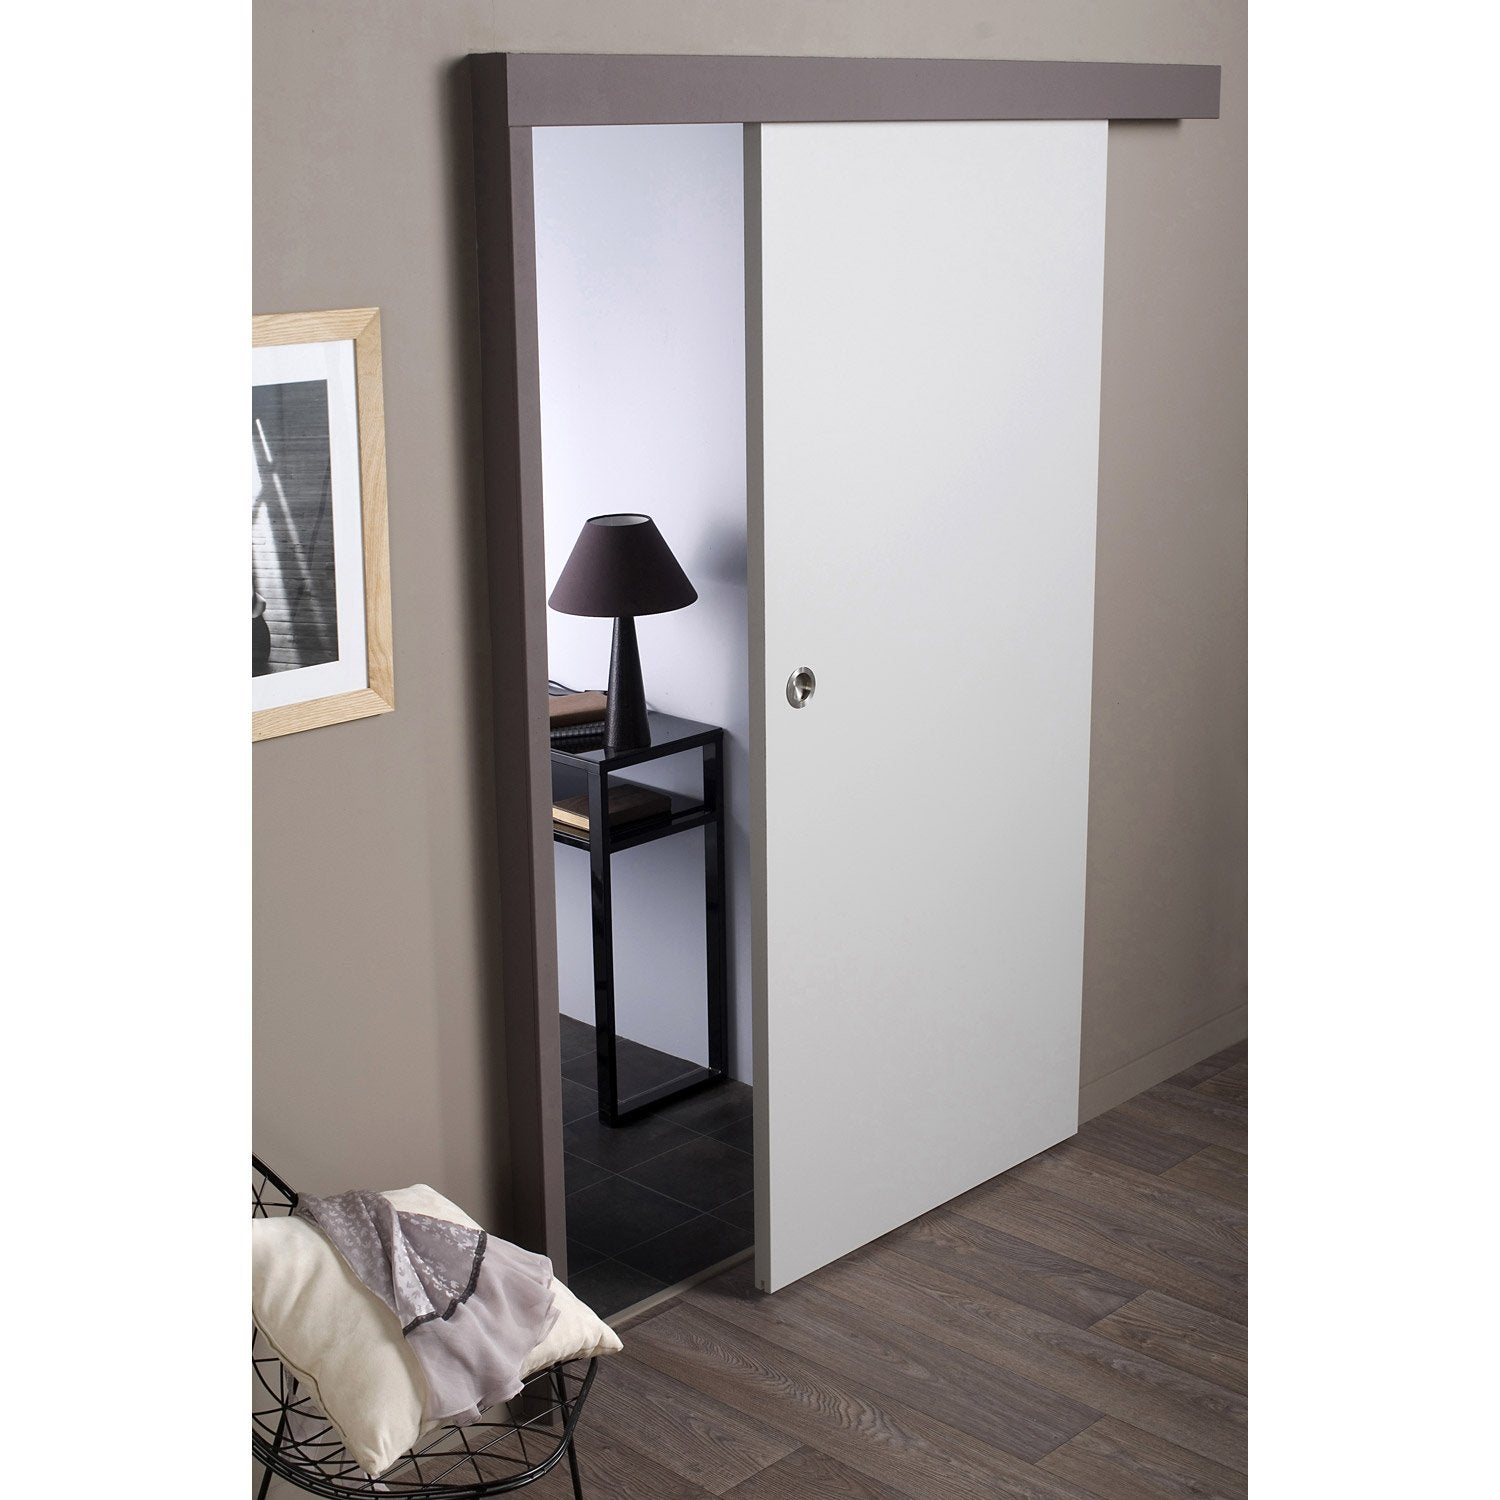 Ensemble porte coulissante isoplane avec le rail jazz 2 en aluminium leroy merlin for Porte coulissante en applique scrigno